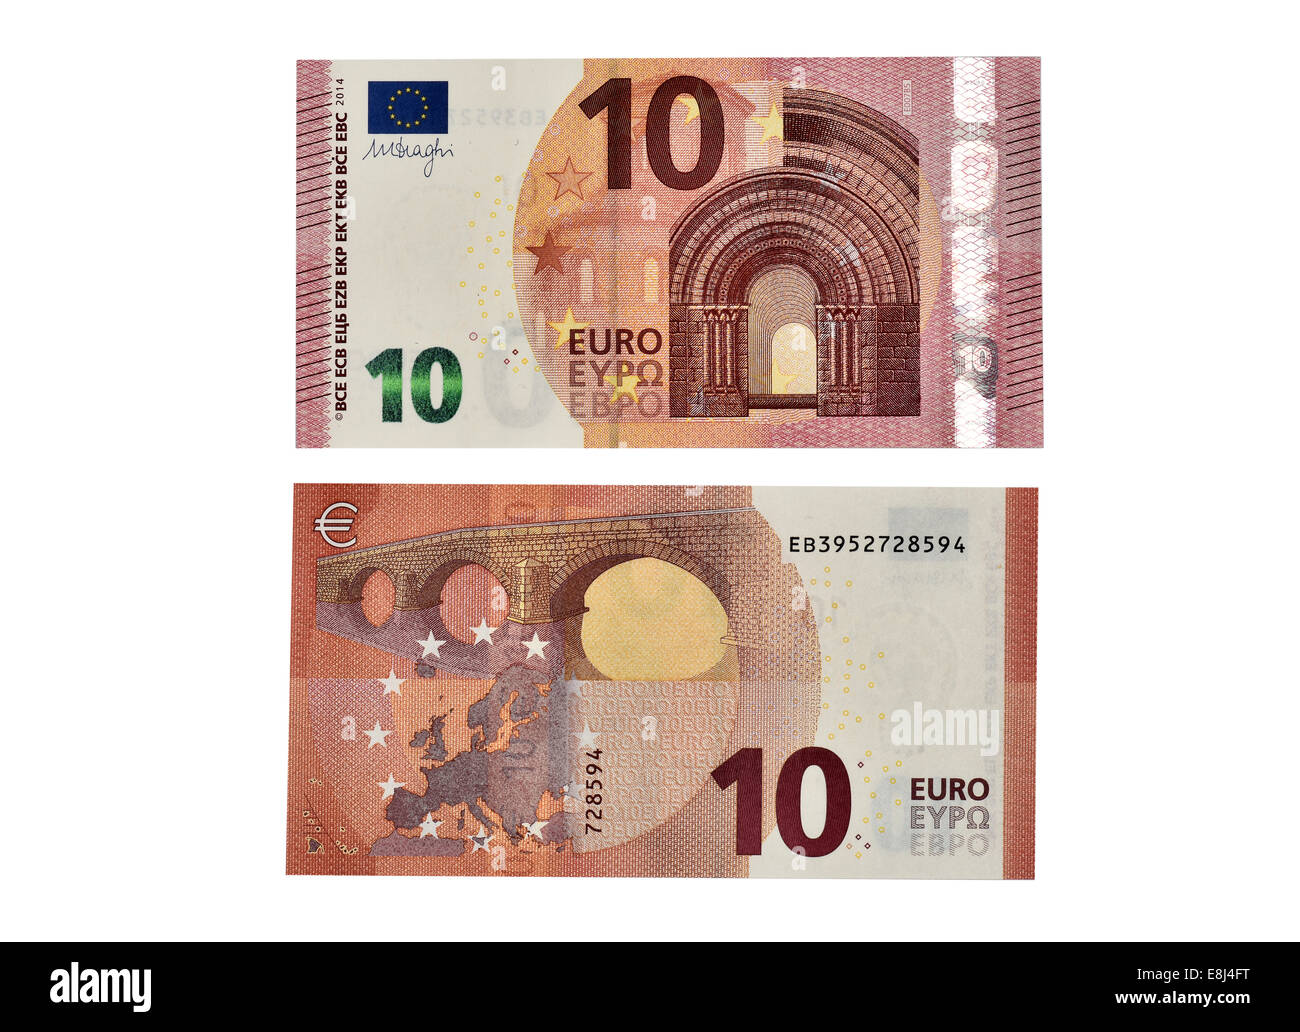 10 EURO banknote, in circulation since September 2014, front and back - Stock Image